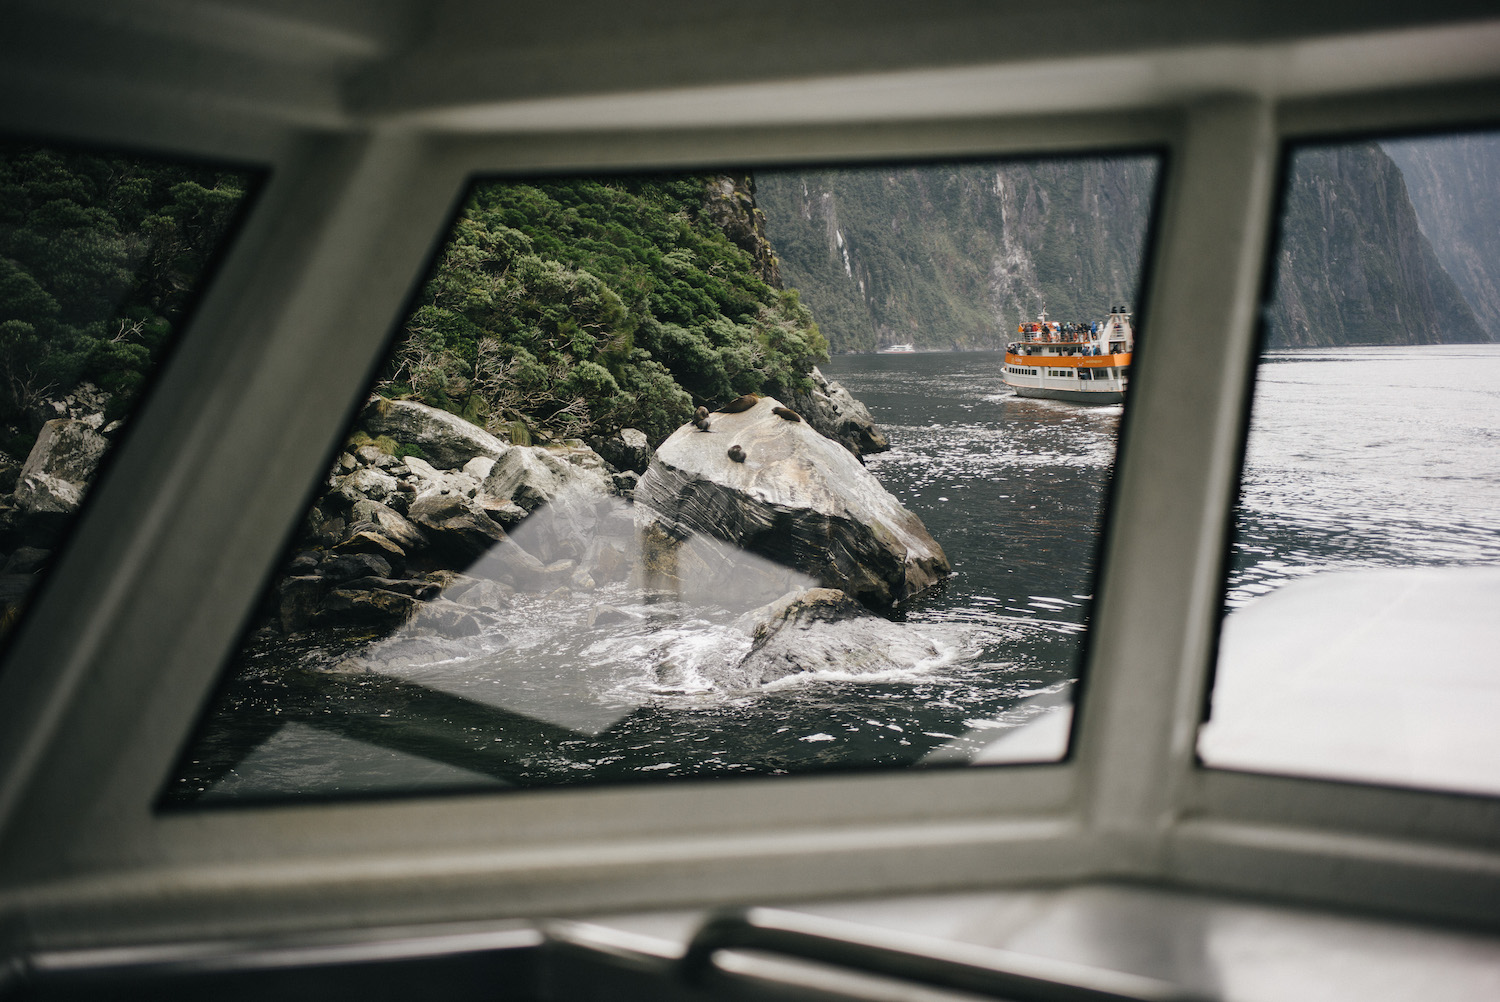 20180208_NewZealand_211022-Nick-Bedford,-Photographer-Alpine, Hiking, Leica M Typ 240, Milford Sound, Moutains, New Zealand, Routeburn Track, Southern Alps, Tramping, VSCO Film.jpg